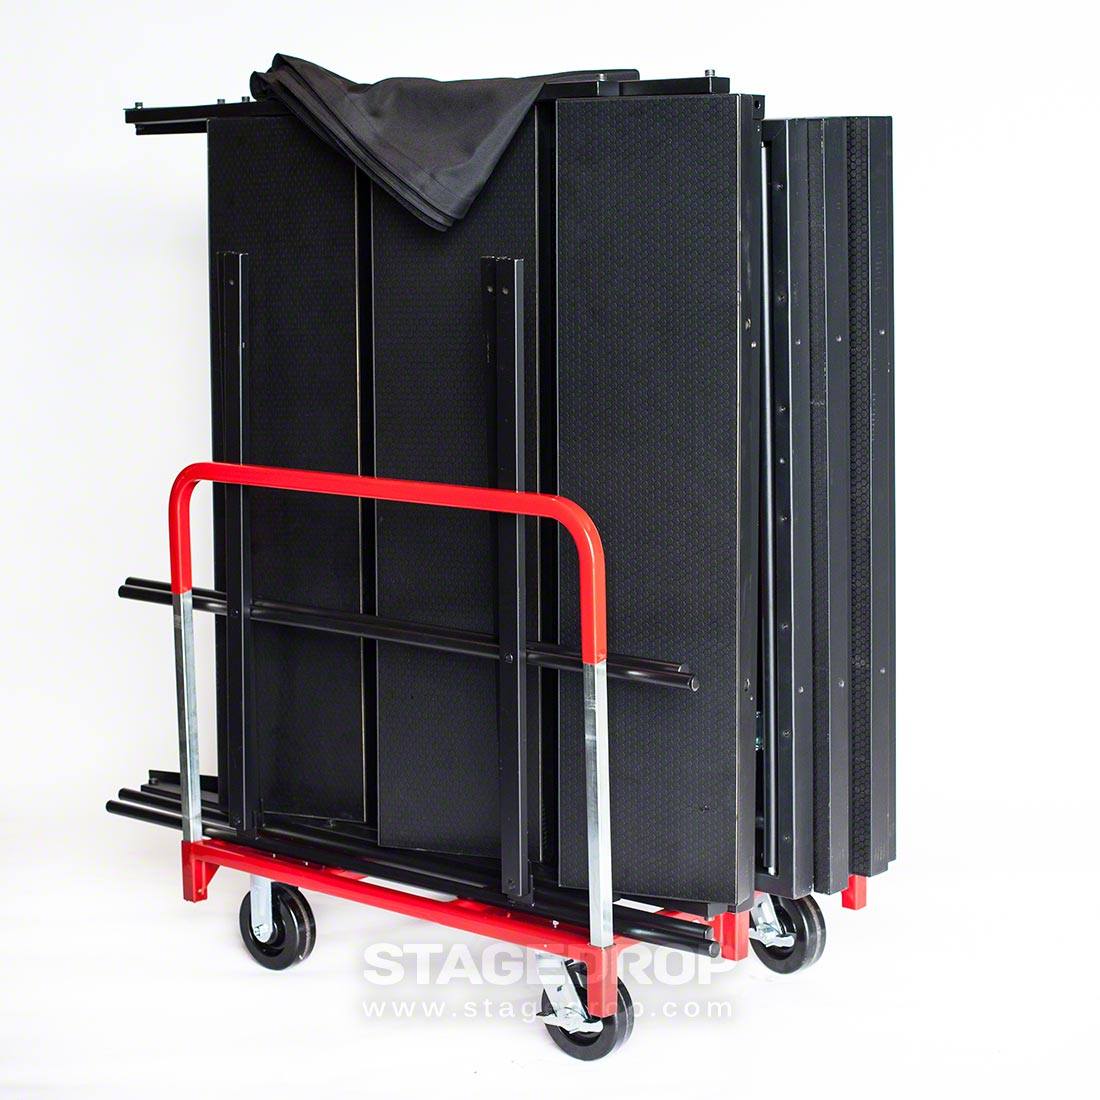 ... TotalPackage™ Dual Height Portable Stage Kit With Wheels, ...